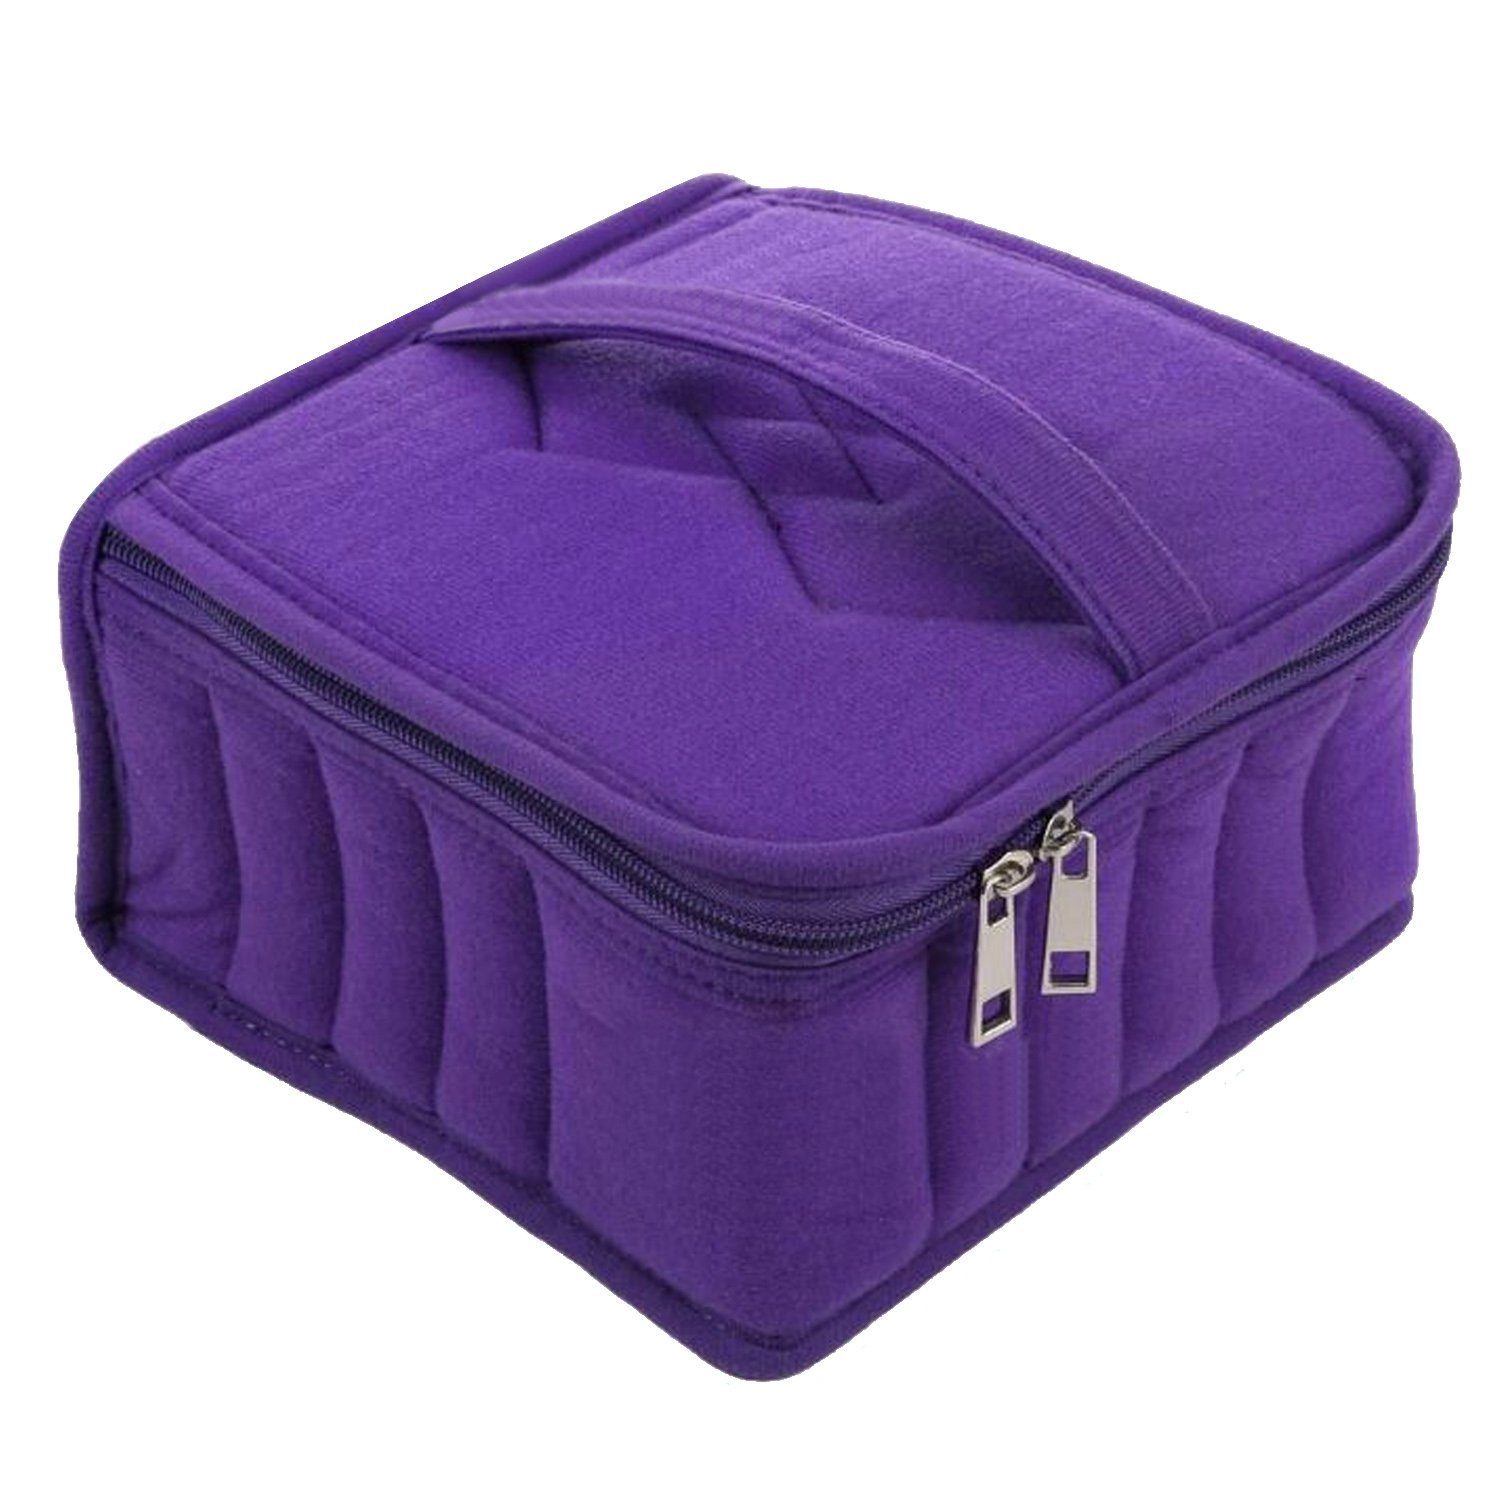 Kangkang@ Essential Oil Bottles Carrying Traval Case 13-slot Holder Organizer Storage Bag for 5ml 10ml 15ml Essential Oil Bottles 2 Colors (Purple)